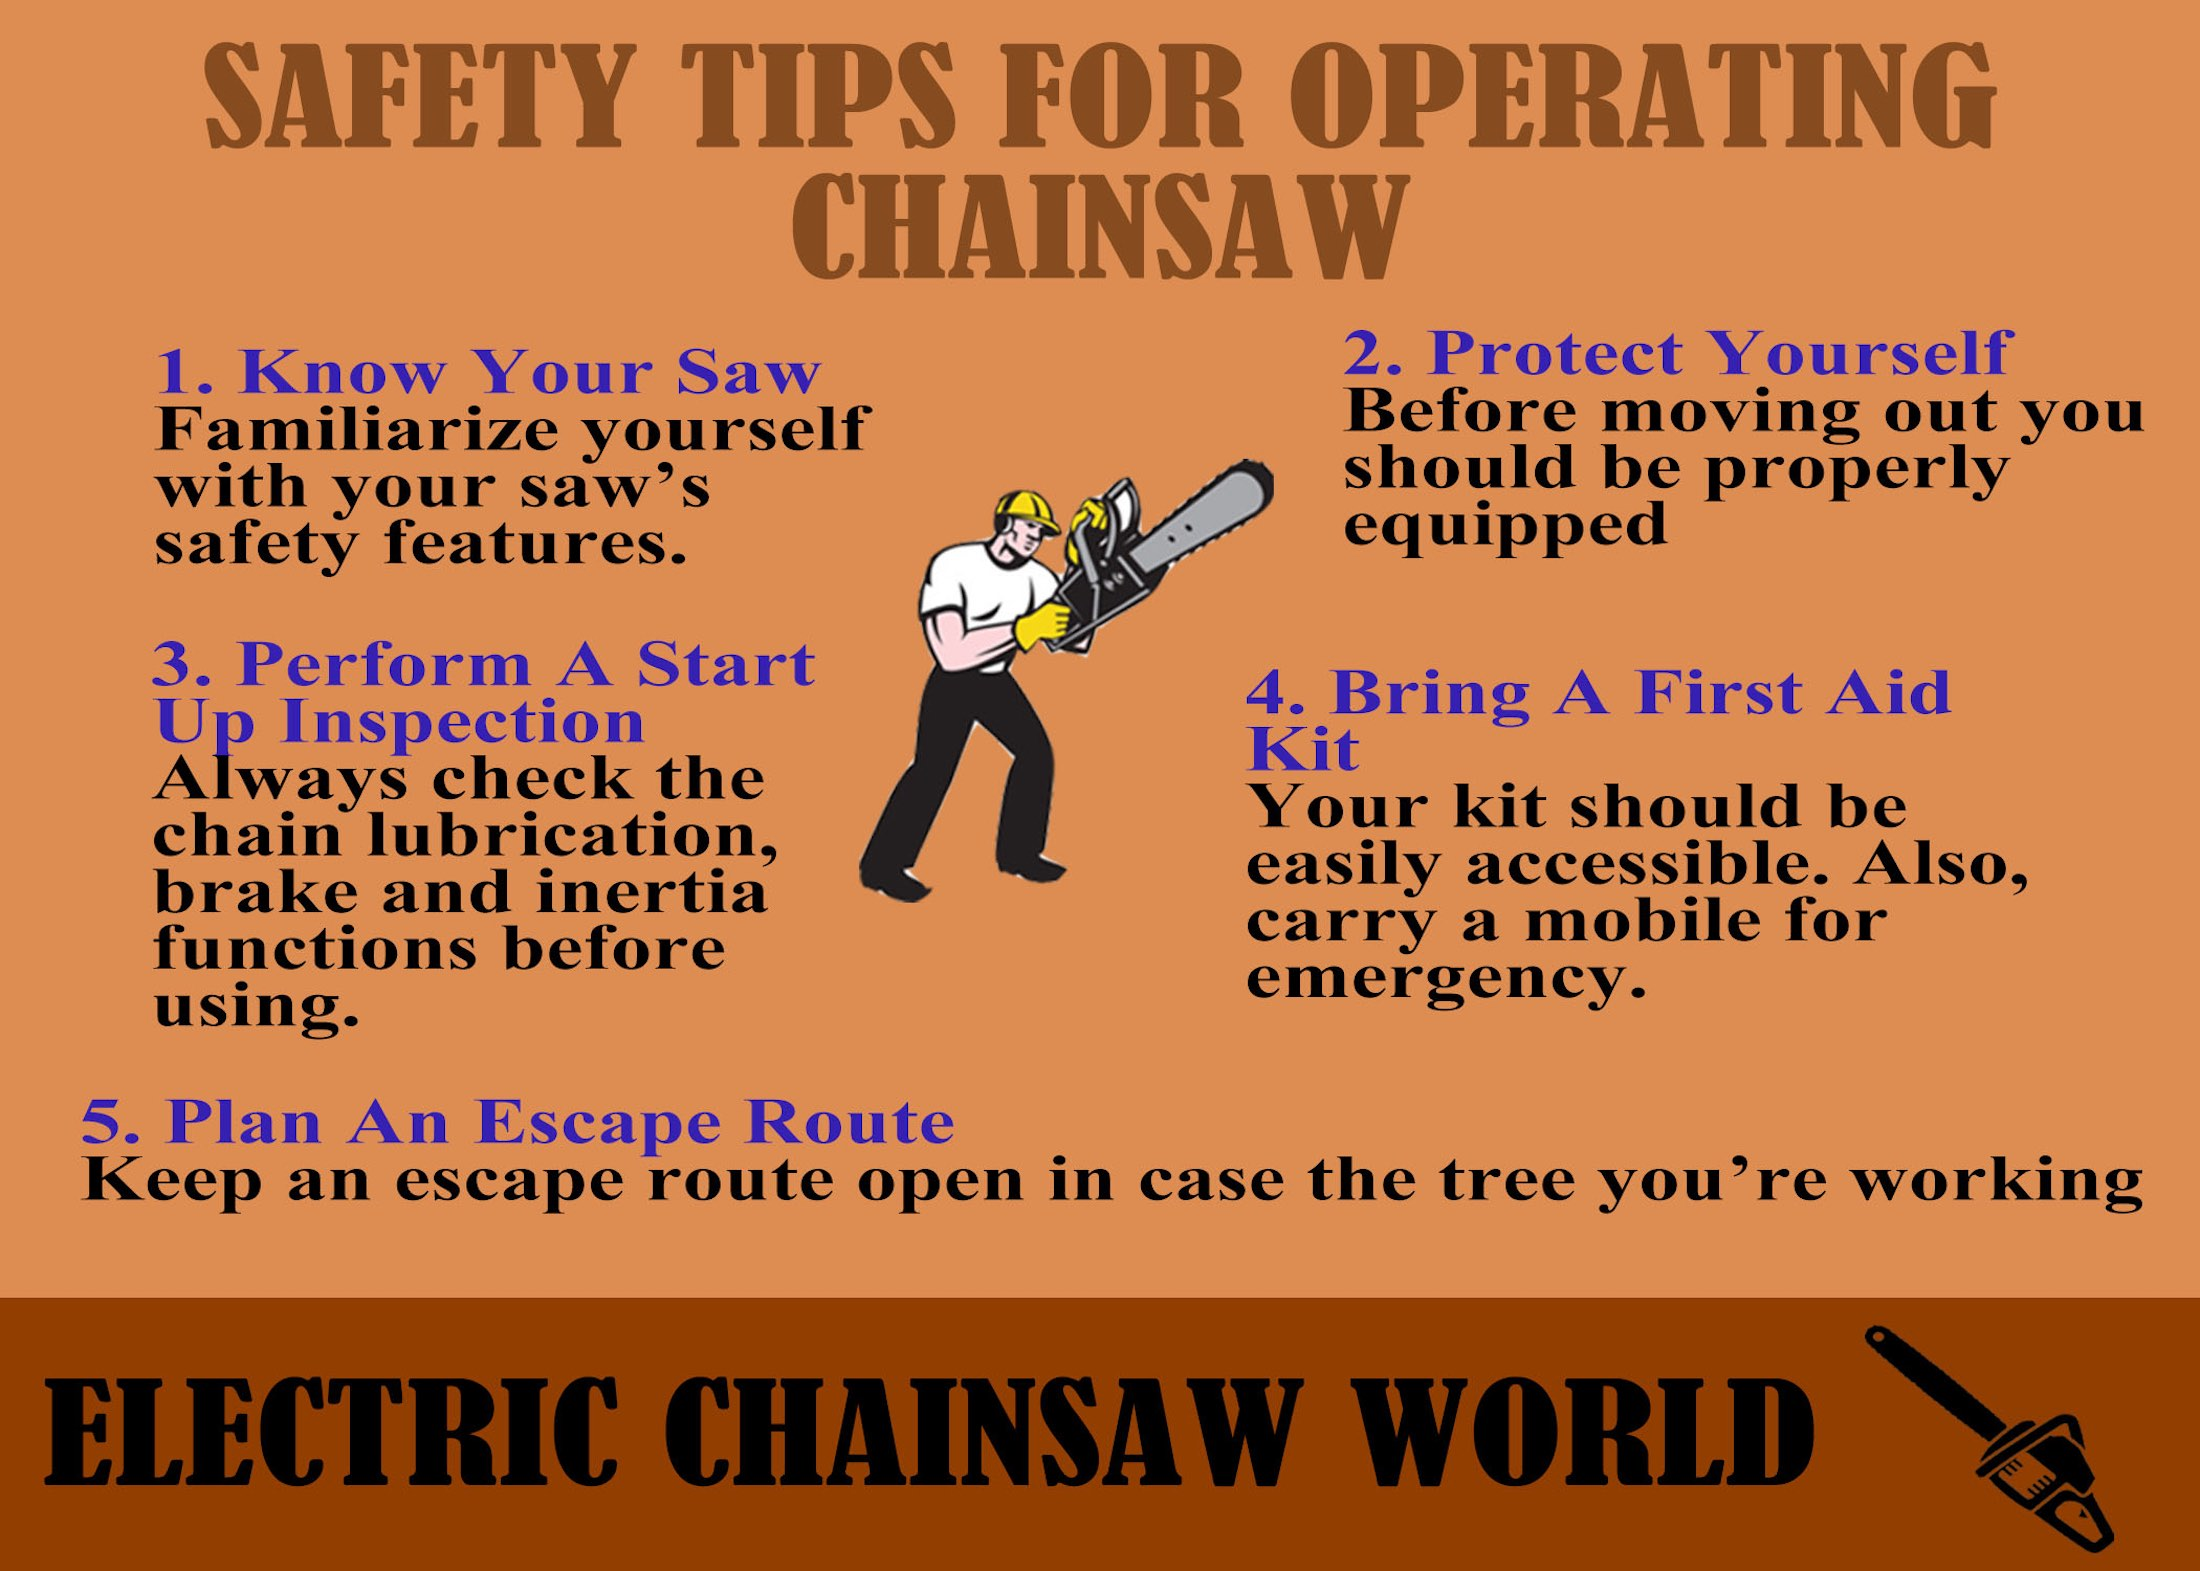 Safety Tips For Operating Chainsaw